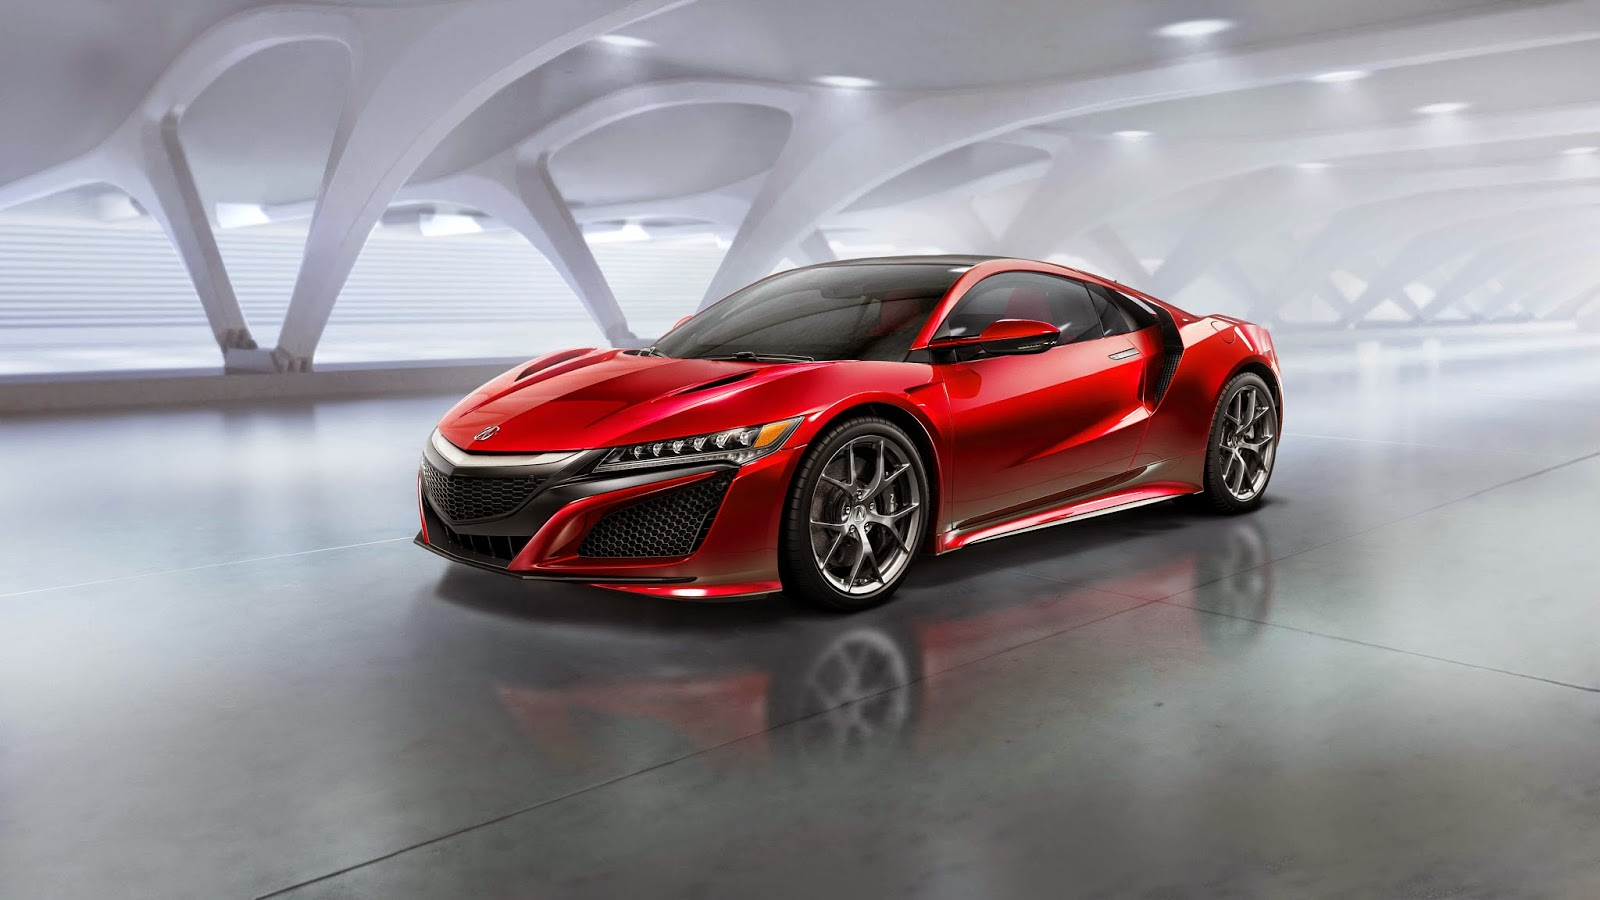 Aboutacura New Acura Nsx Unveiled Fuse Box For More Pictures And The Full Press Release Please See Rebirth Of An Icon Next Generation